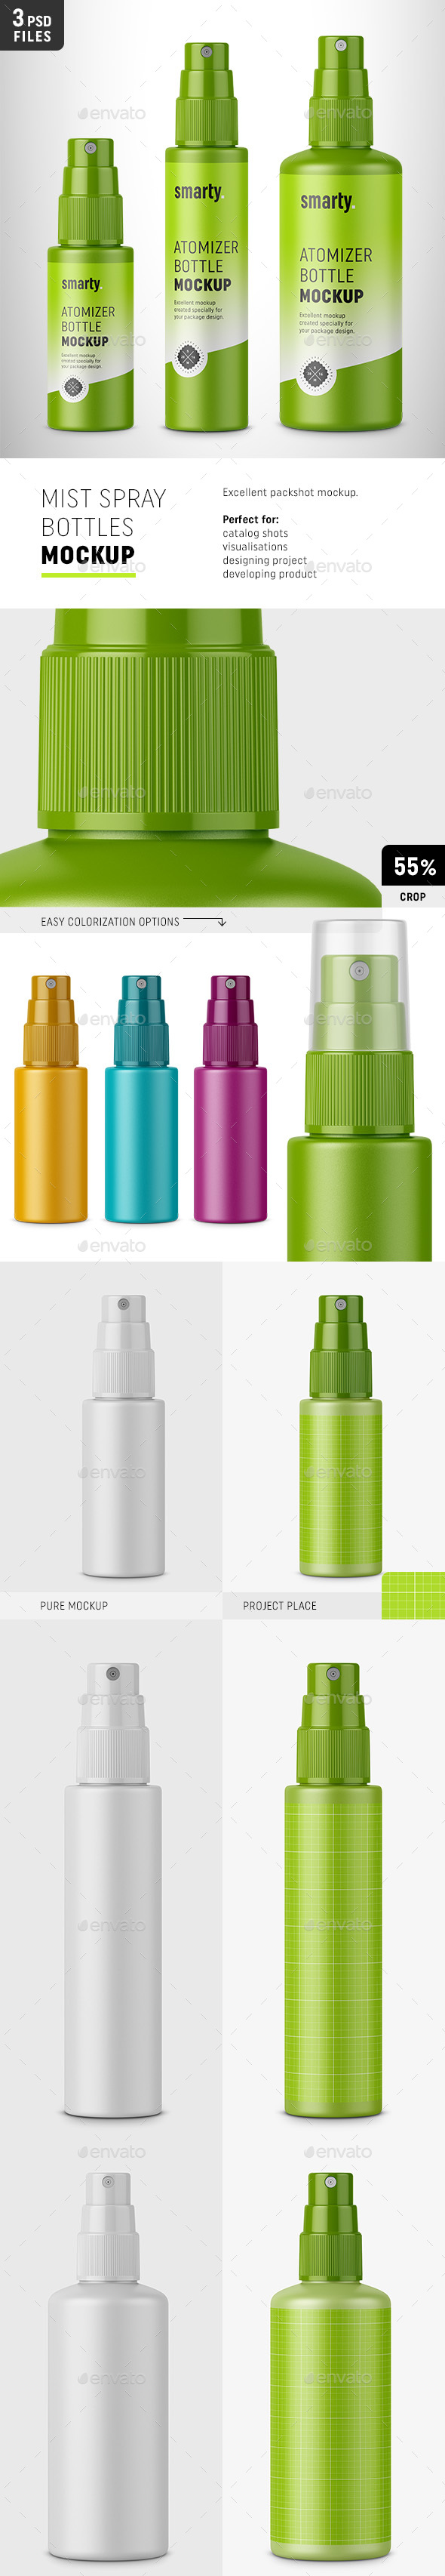 Mist Spray Bottles Mockup - Packaging Product Mock-Ups